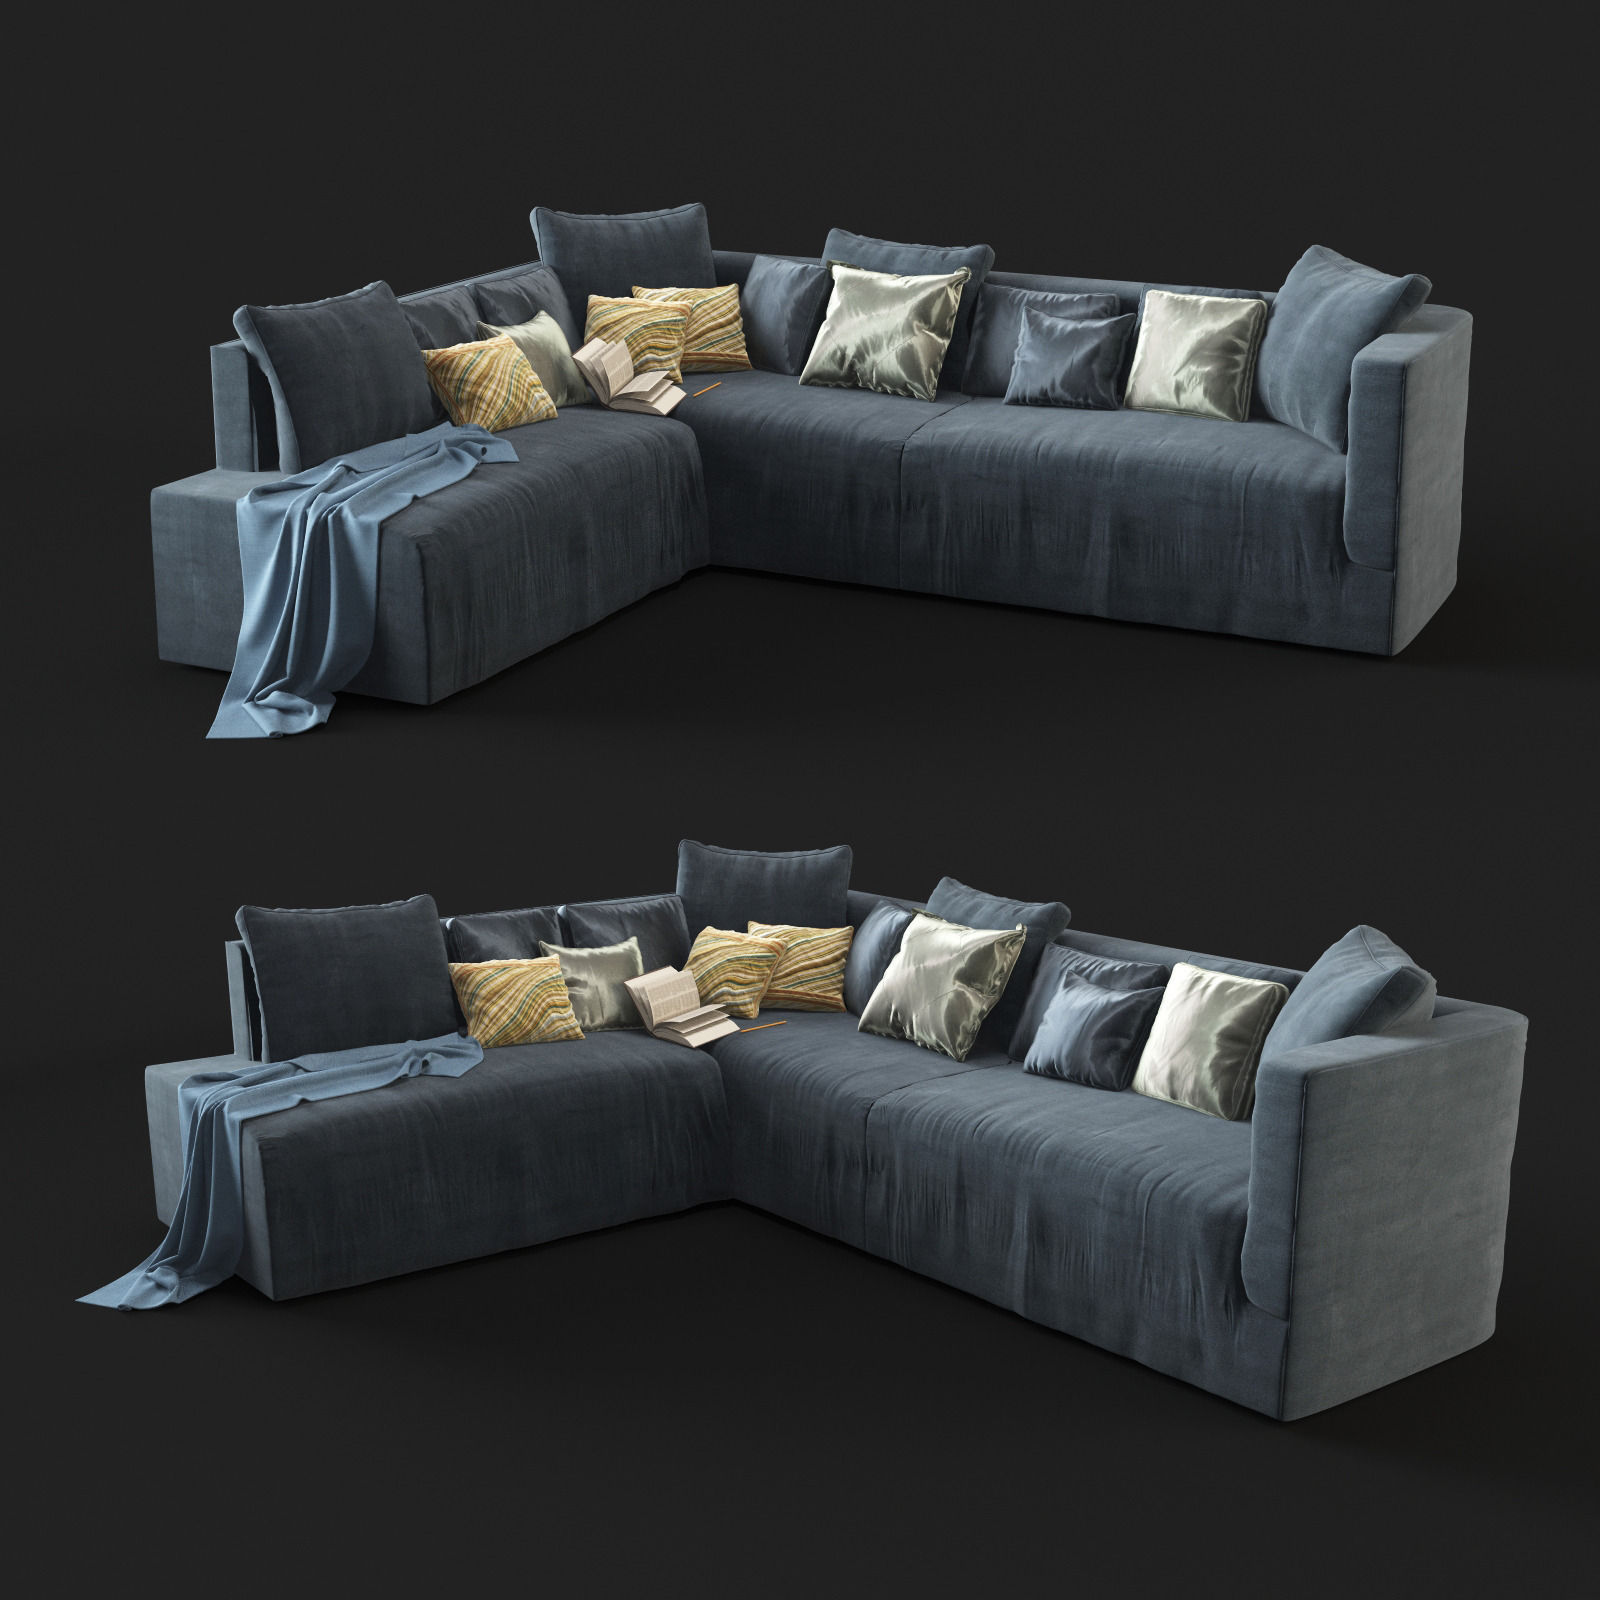 Modern Furniture 3D Models